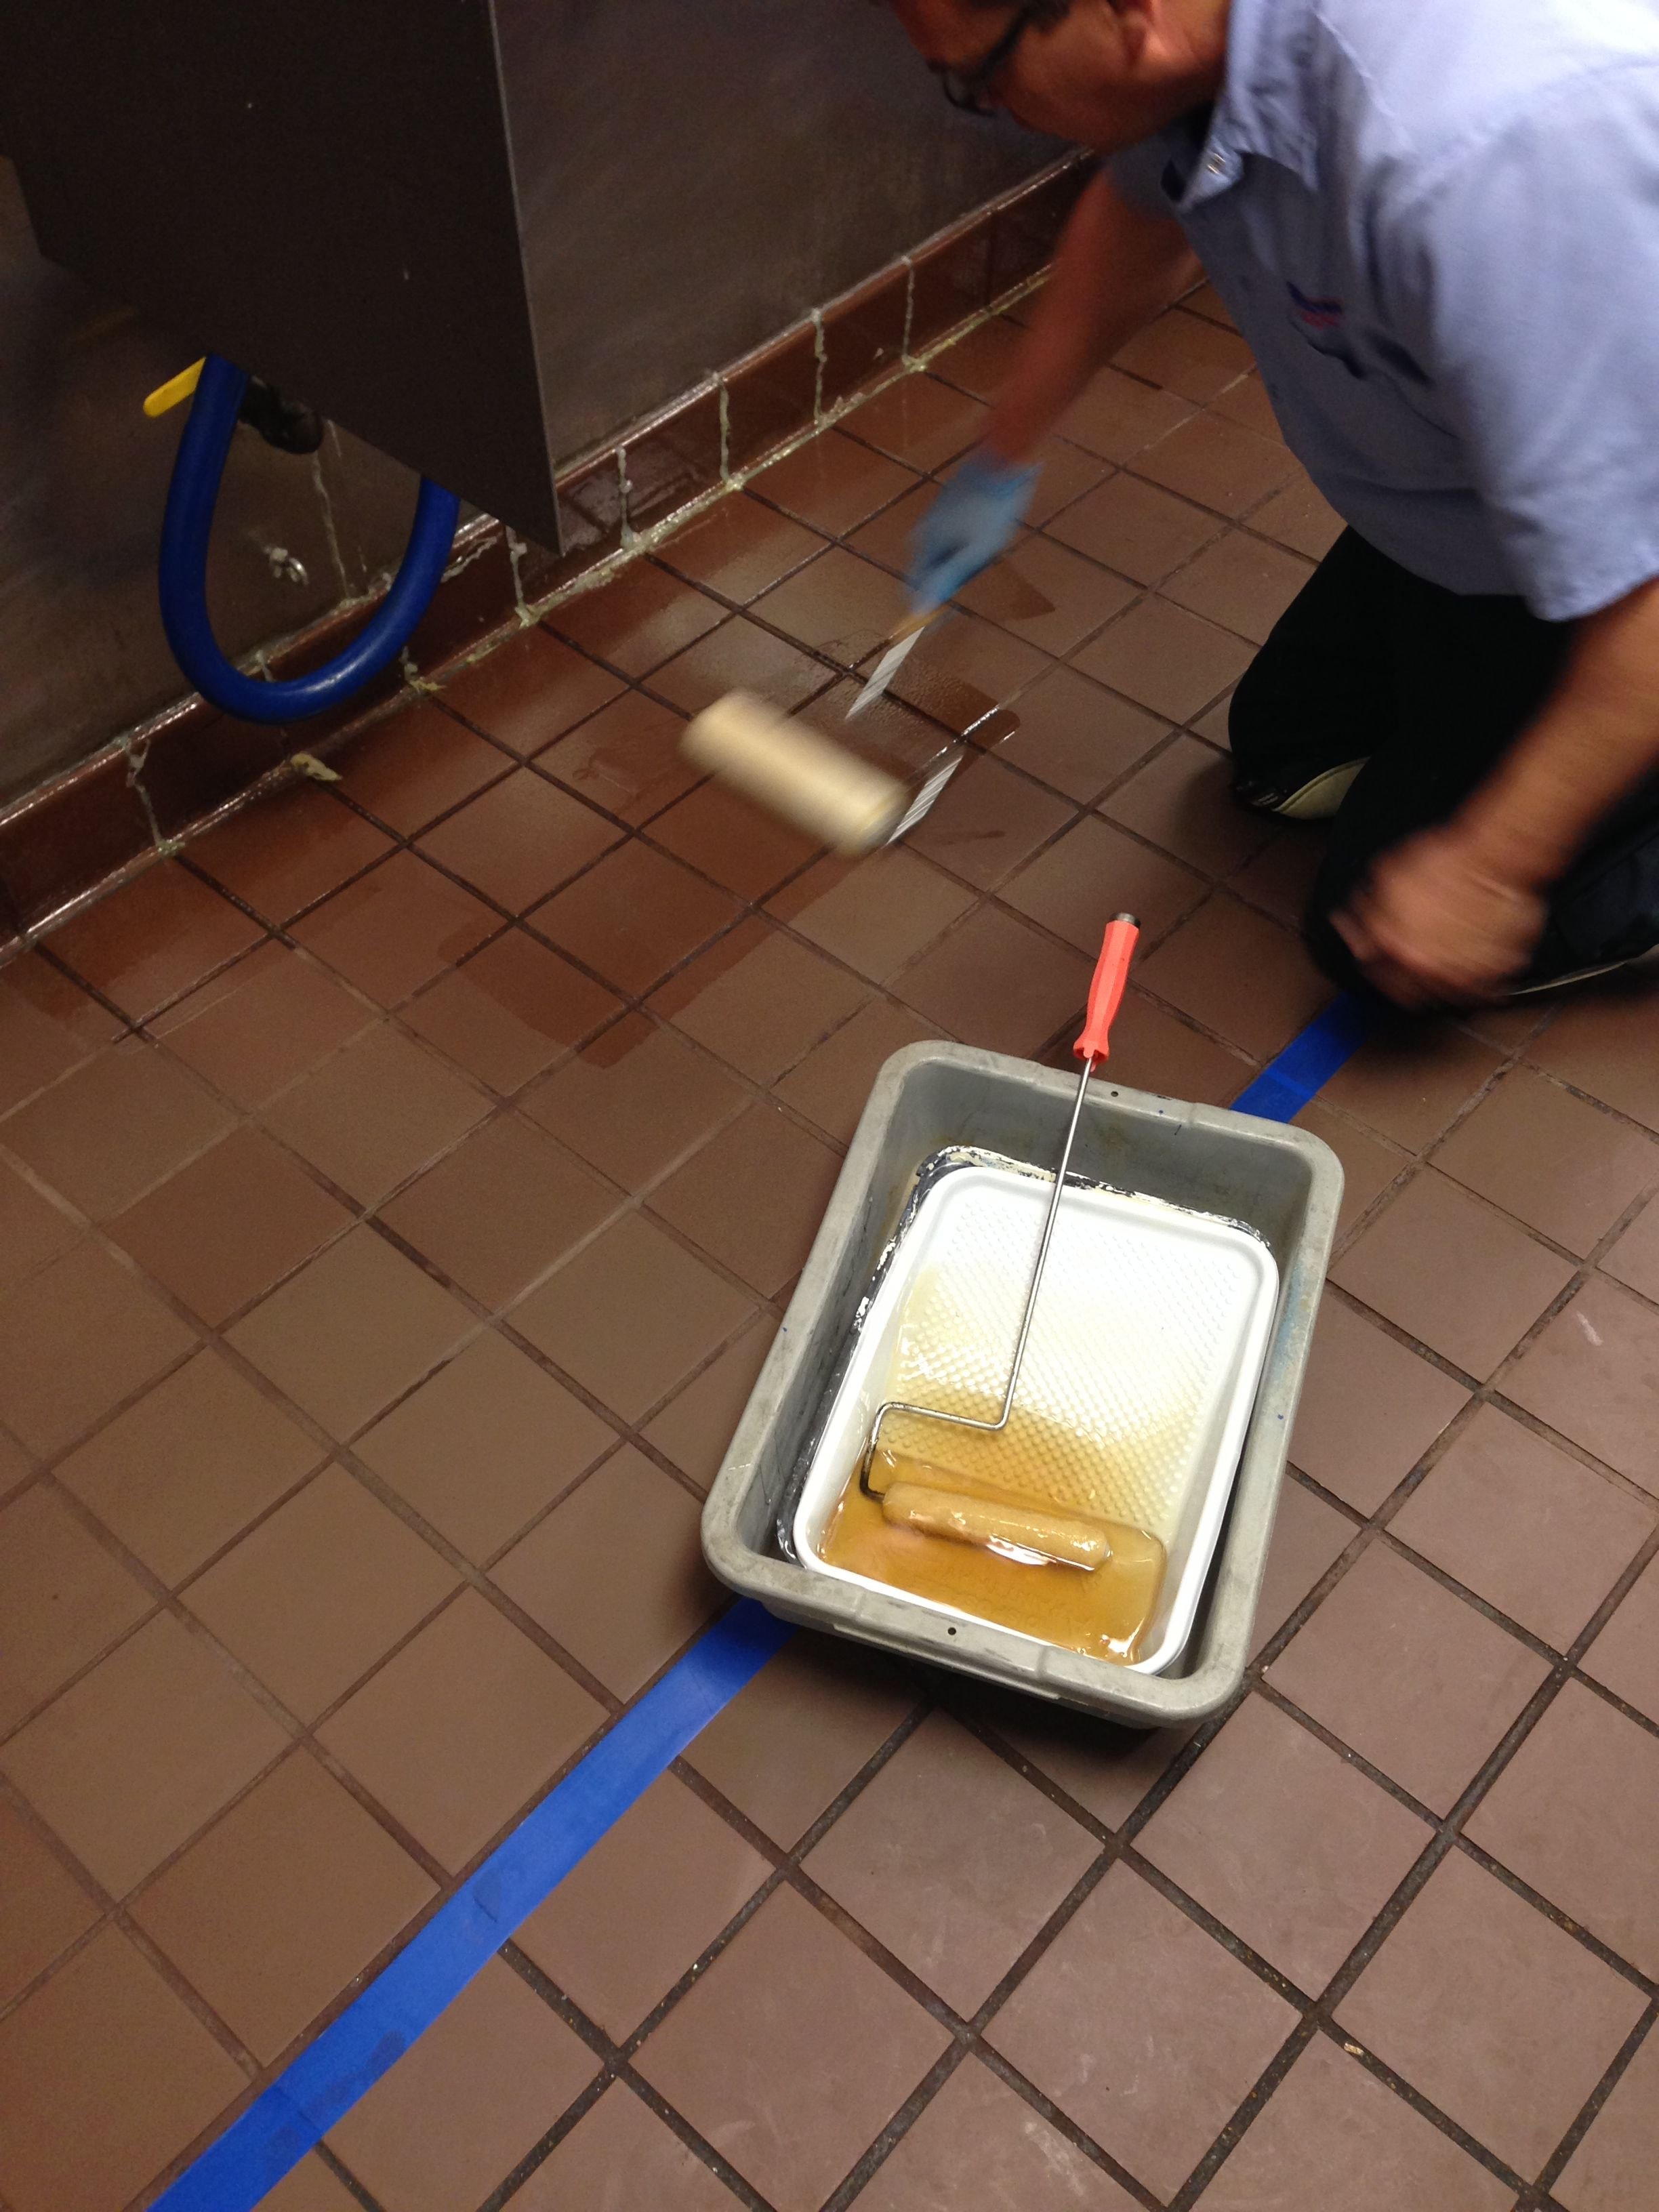 Illinois tile cleaning this restaurant floor had an issue with illinois tile cleaning this restaurant floor had an issue with water and grease seeping through grout and under floor so we did a degreasing clean dailygadgetfo Image collections